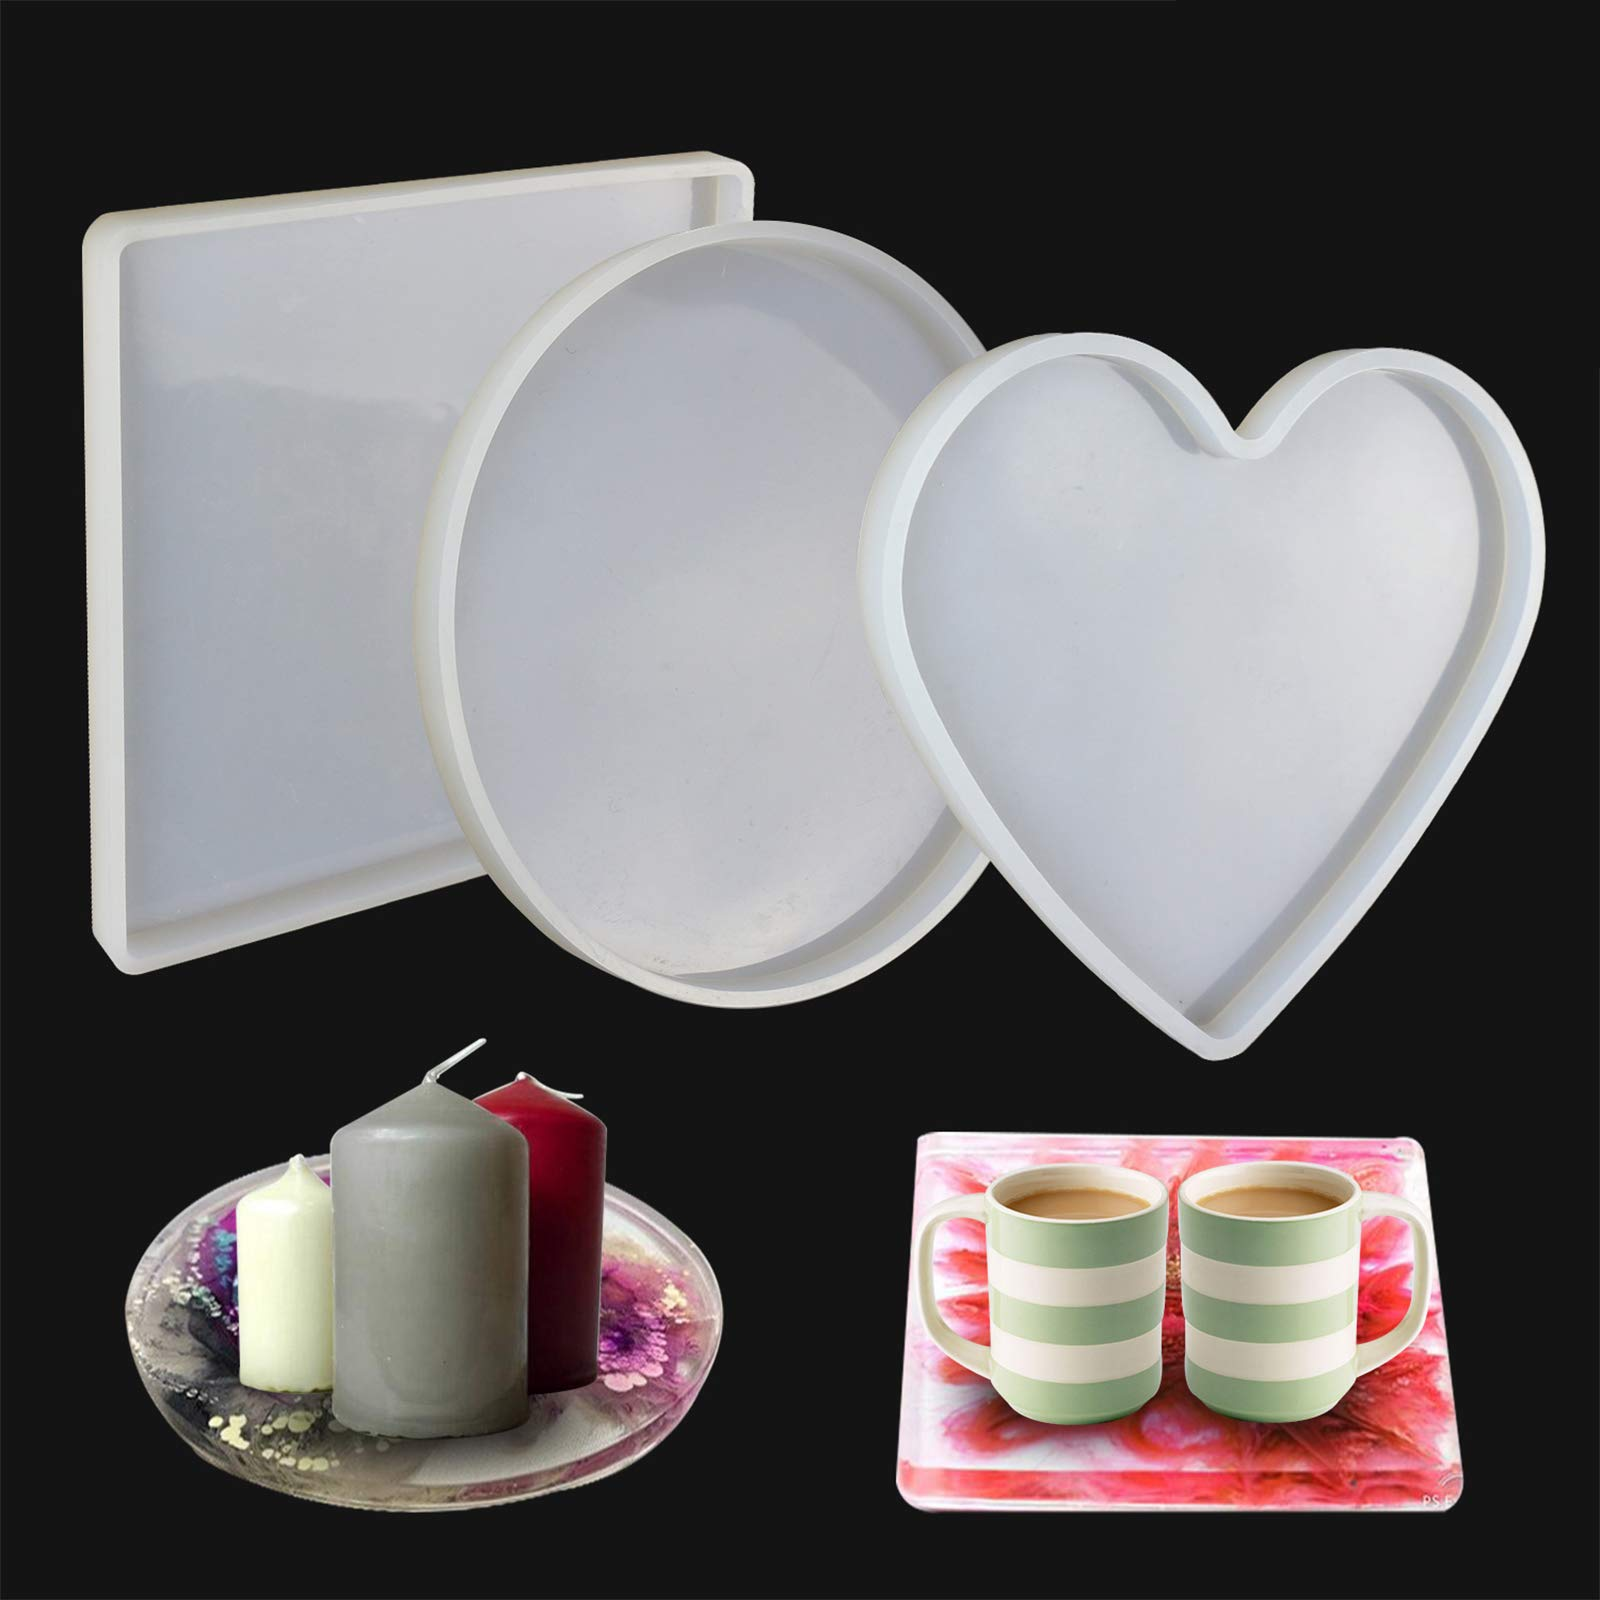 LET'S RESIN Large Resin Molds, 3 Pcs Large Resin Tray Molds including Round, Square, Heart Shape, Resin Silicone Molds for Casting Epoxy Resin